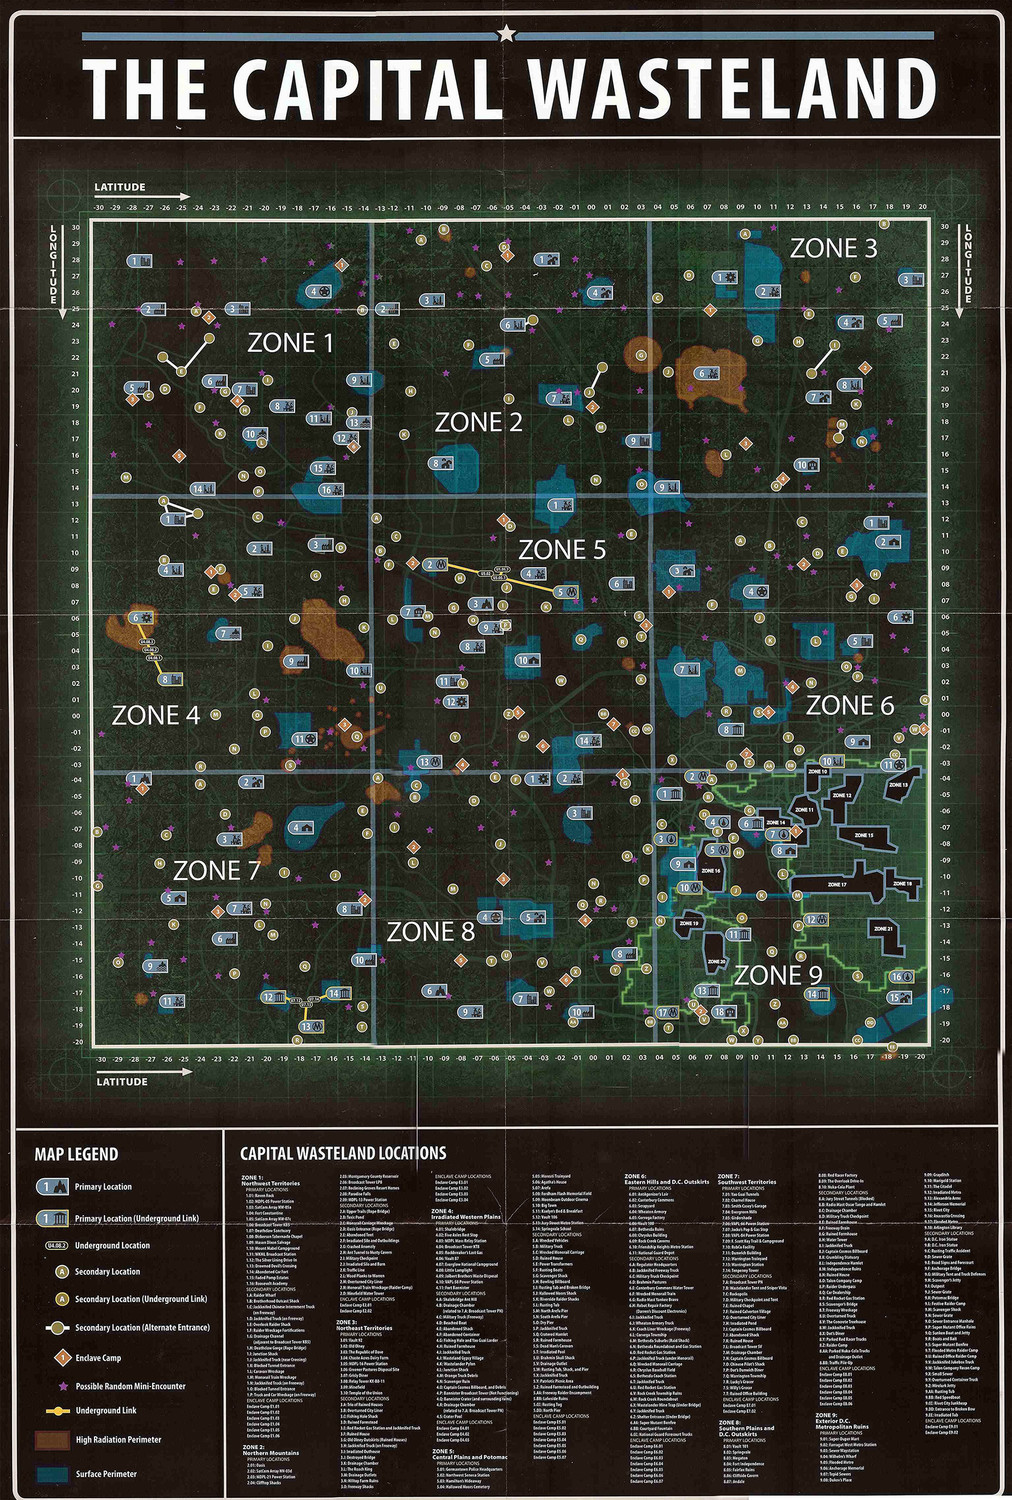 Map of the Capital Wasteland (Fallout 3)